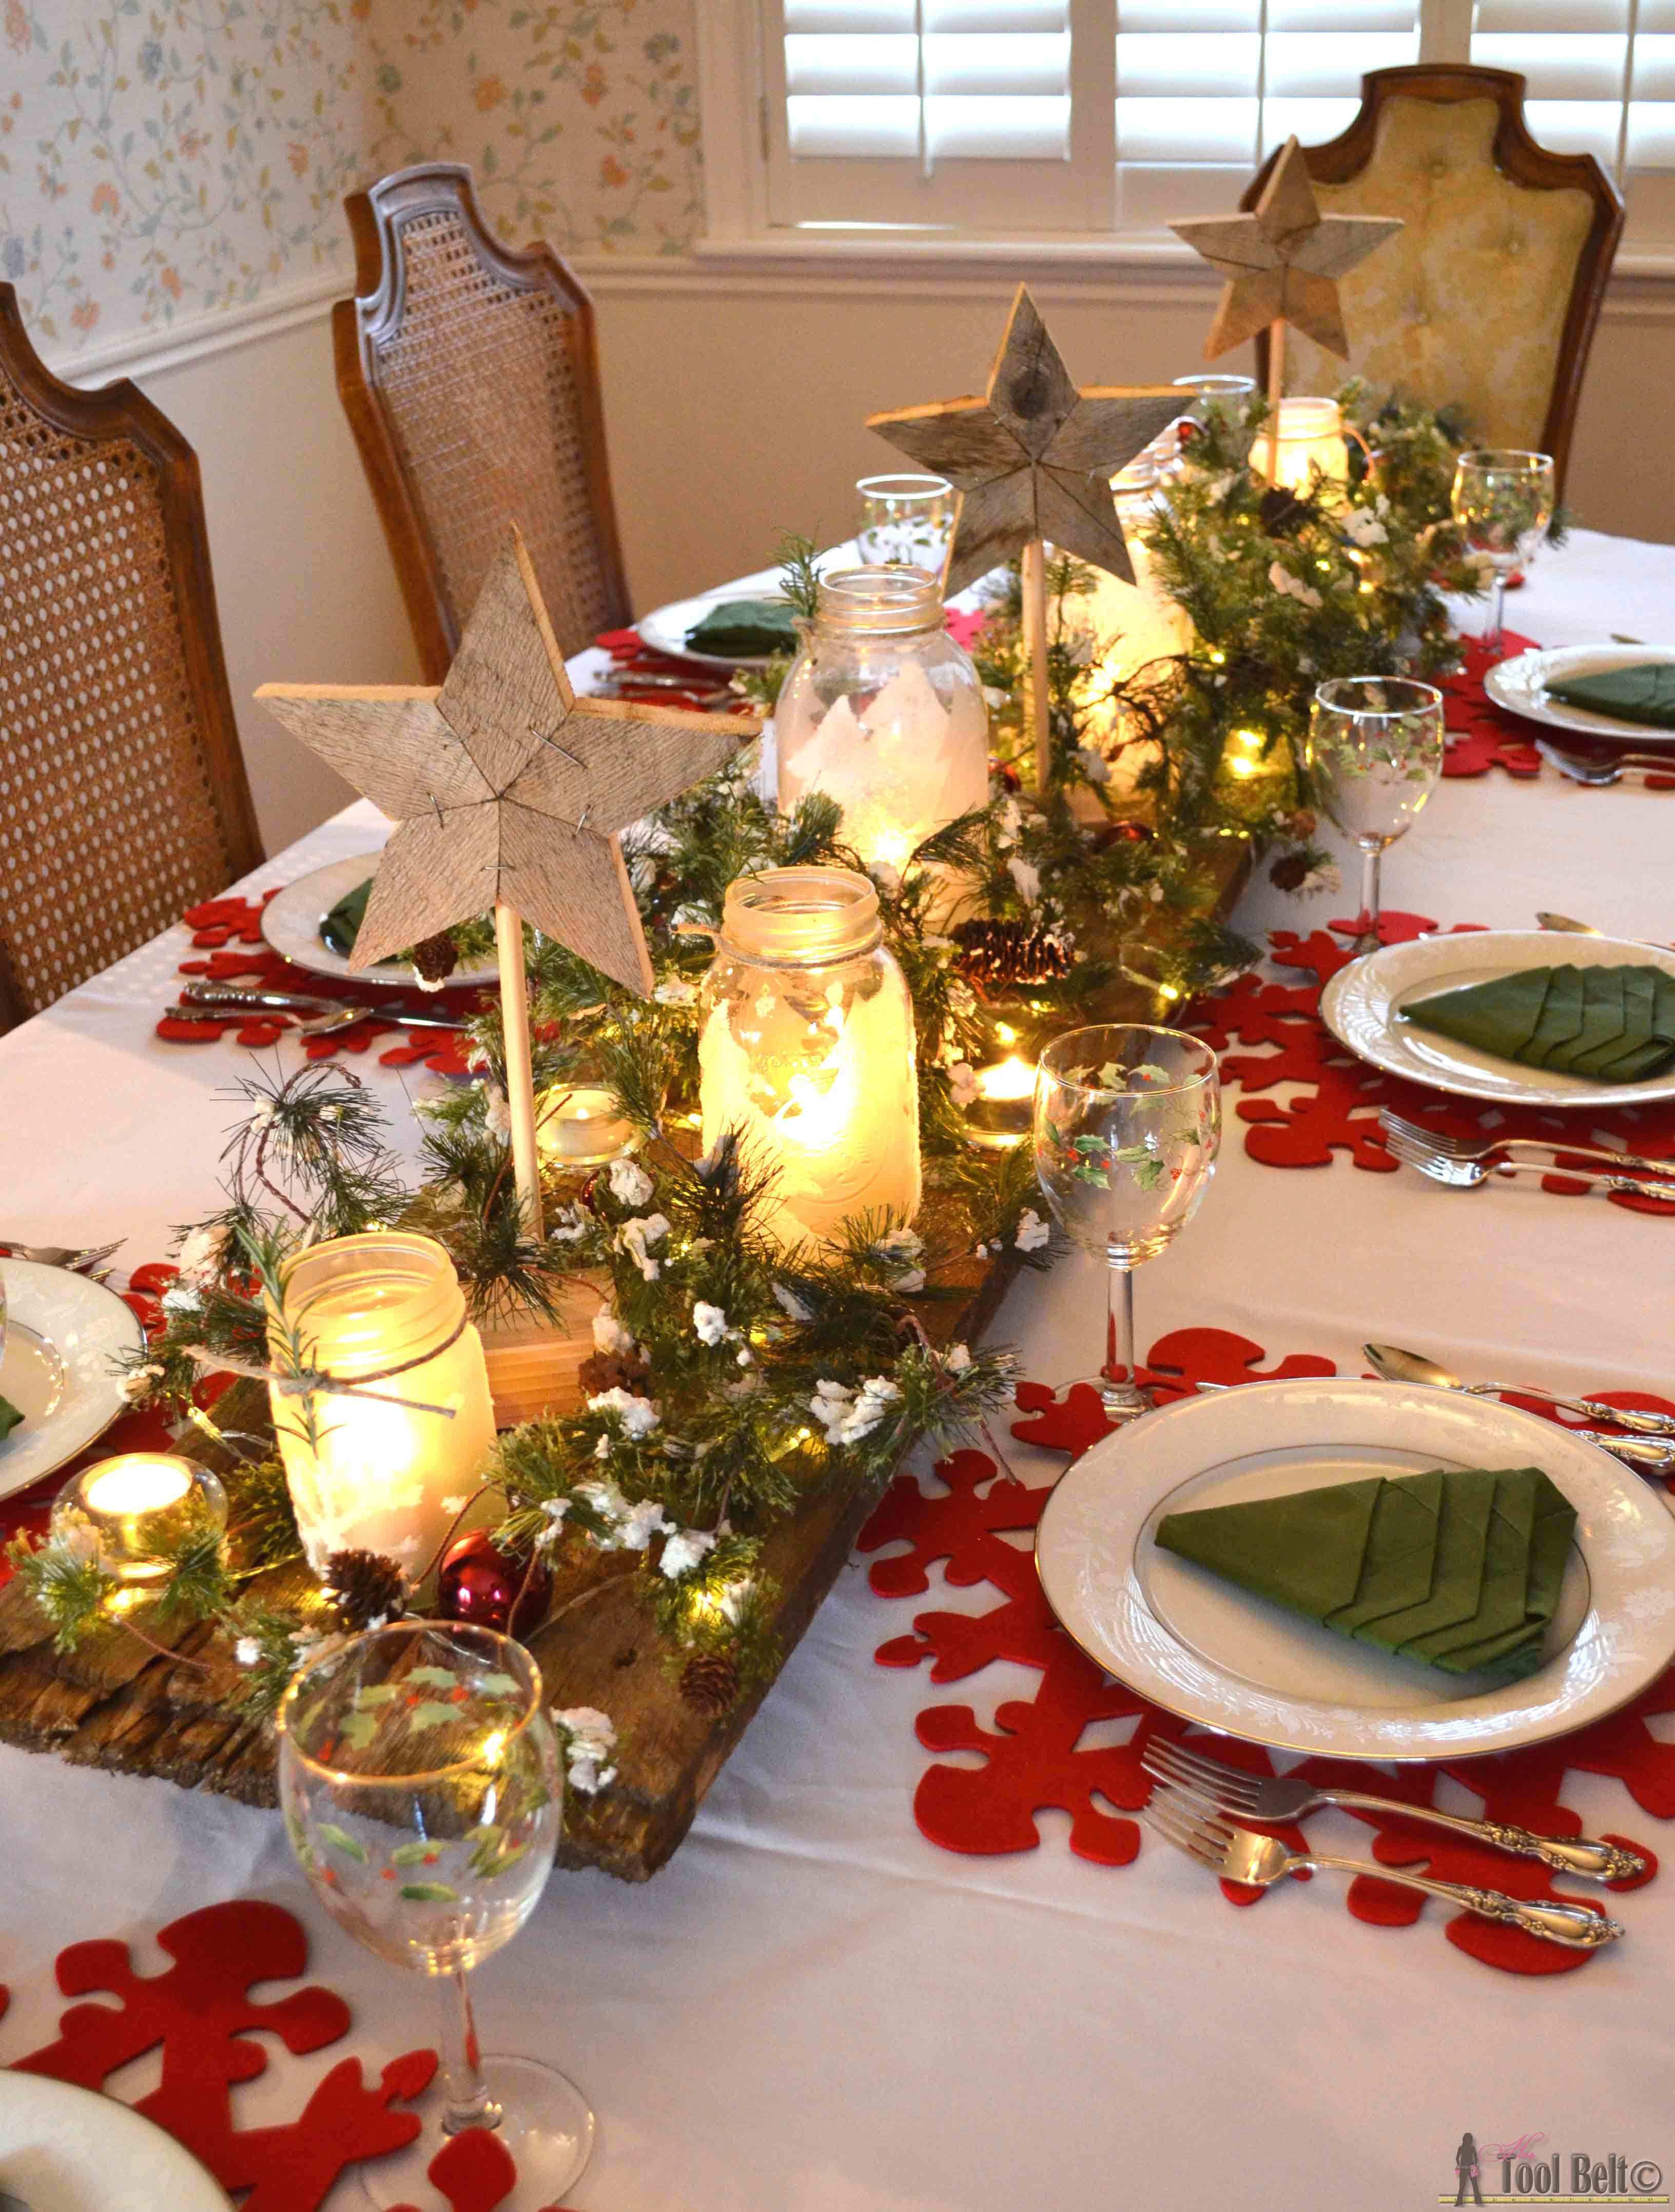 Christmas Table Decorations  Winter Wonderland Christmas Tablescape Her Tool Belt